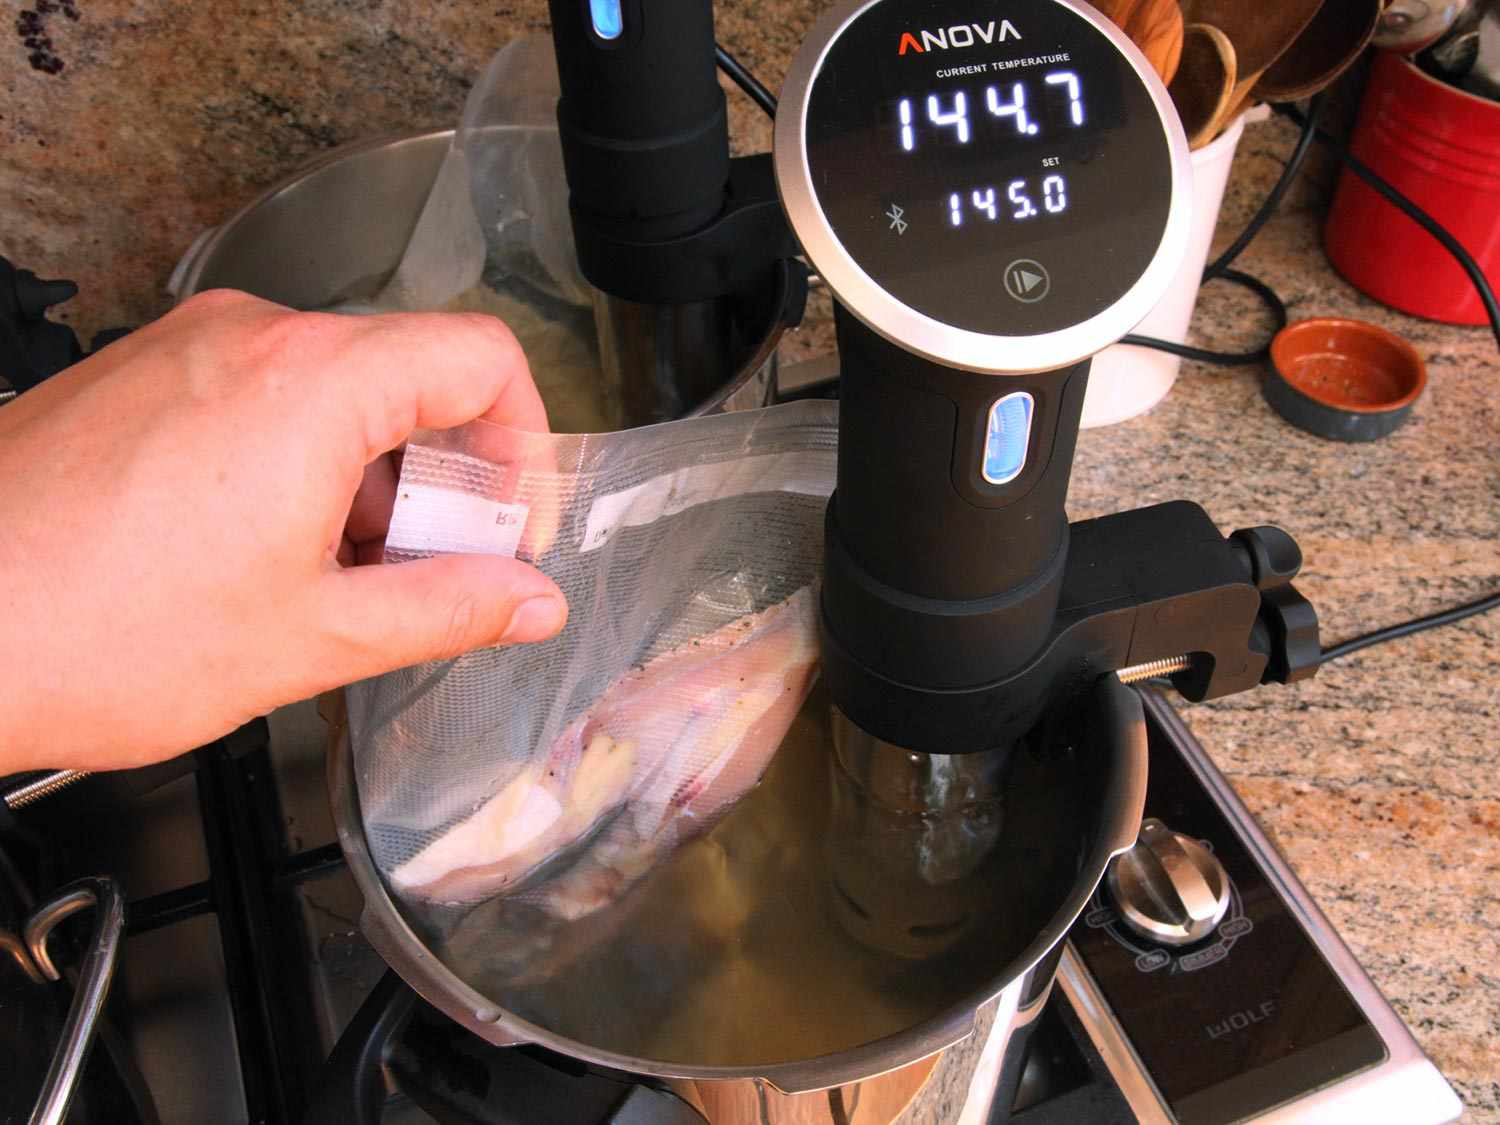 Lowering bagged chicken breast into a pot of water with a sous vide precision cooker attached